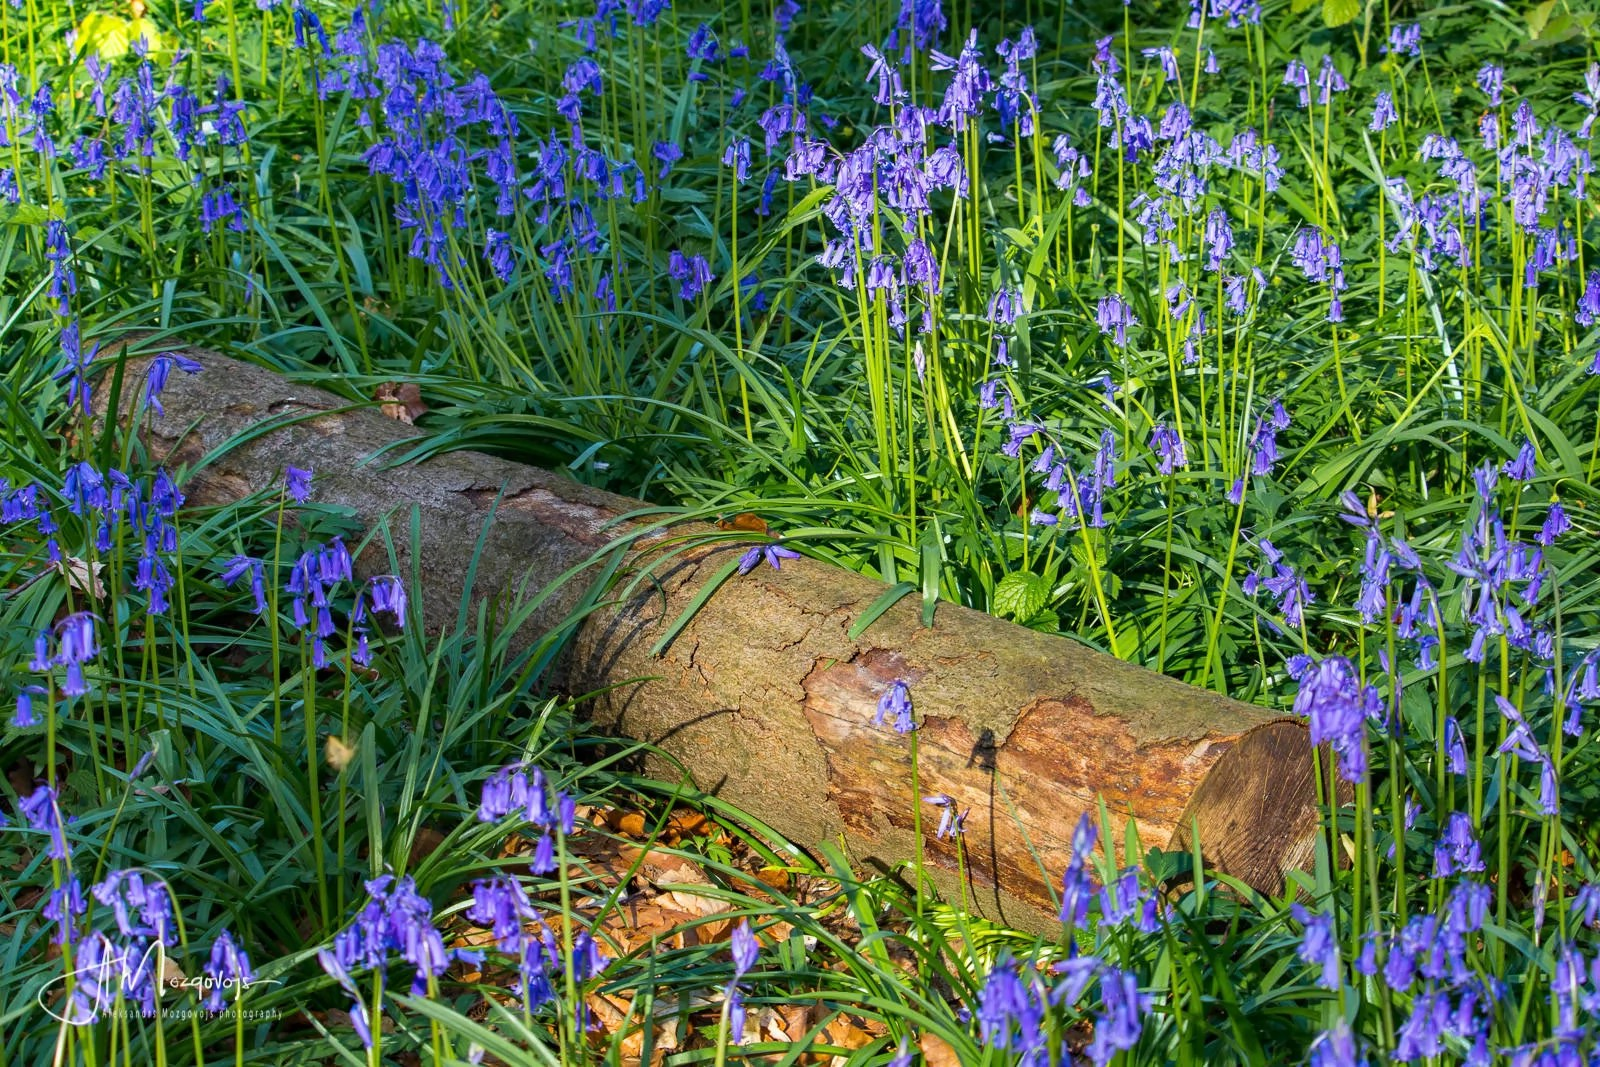 A log surrounded by blooming bluebells in Hallerbos